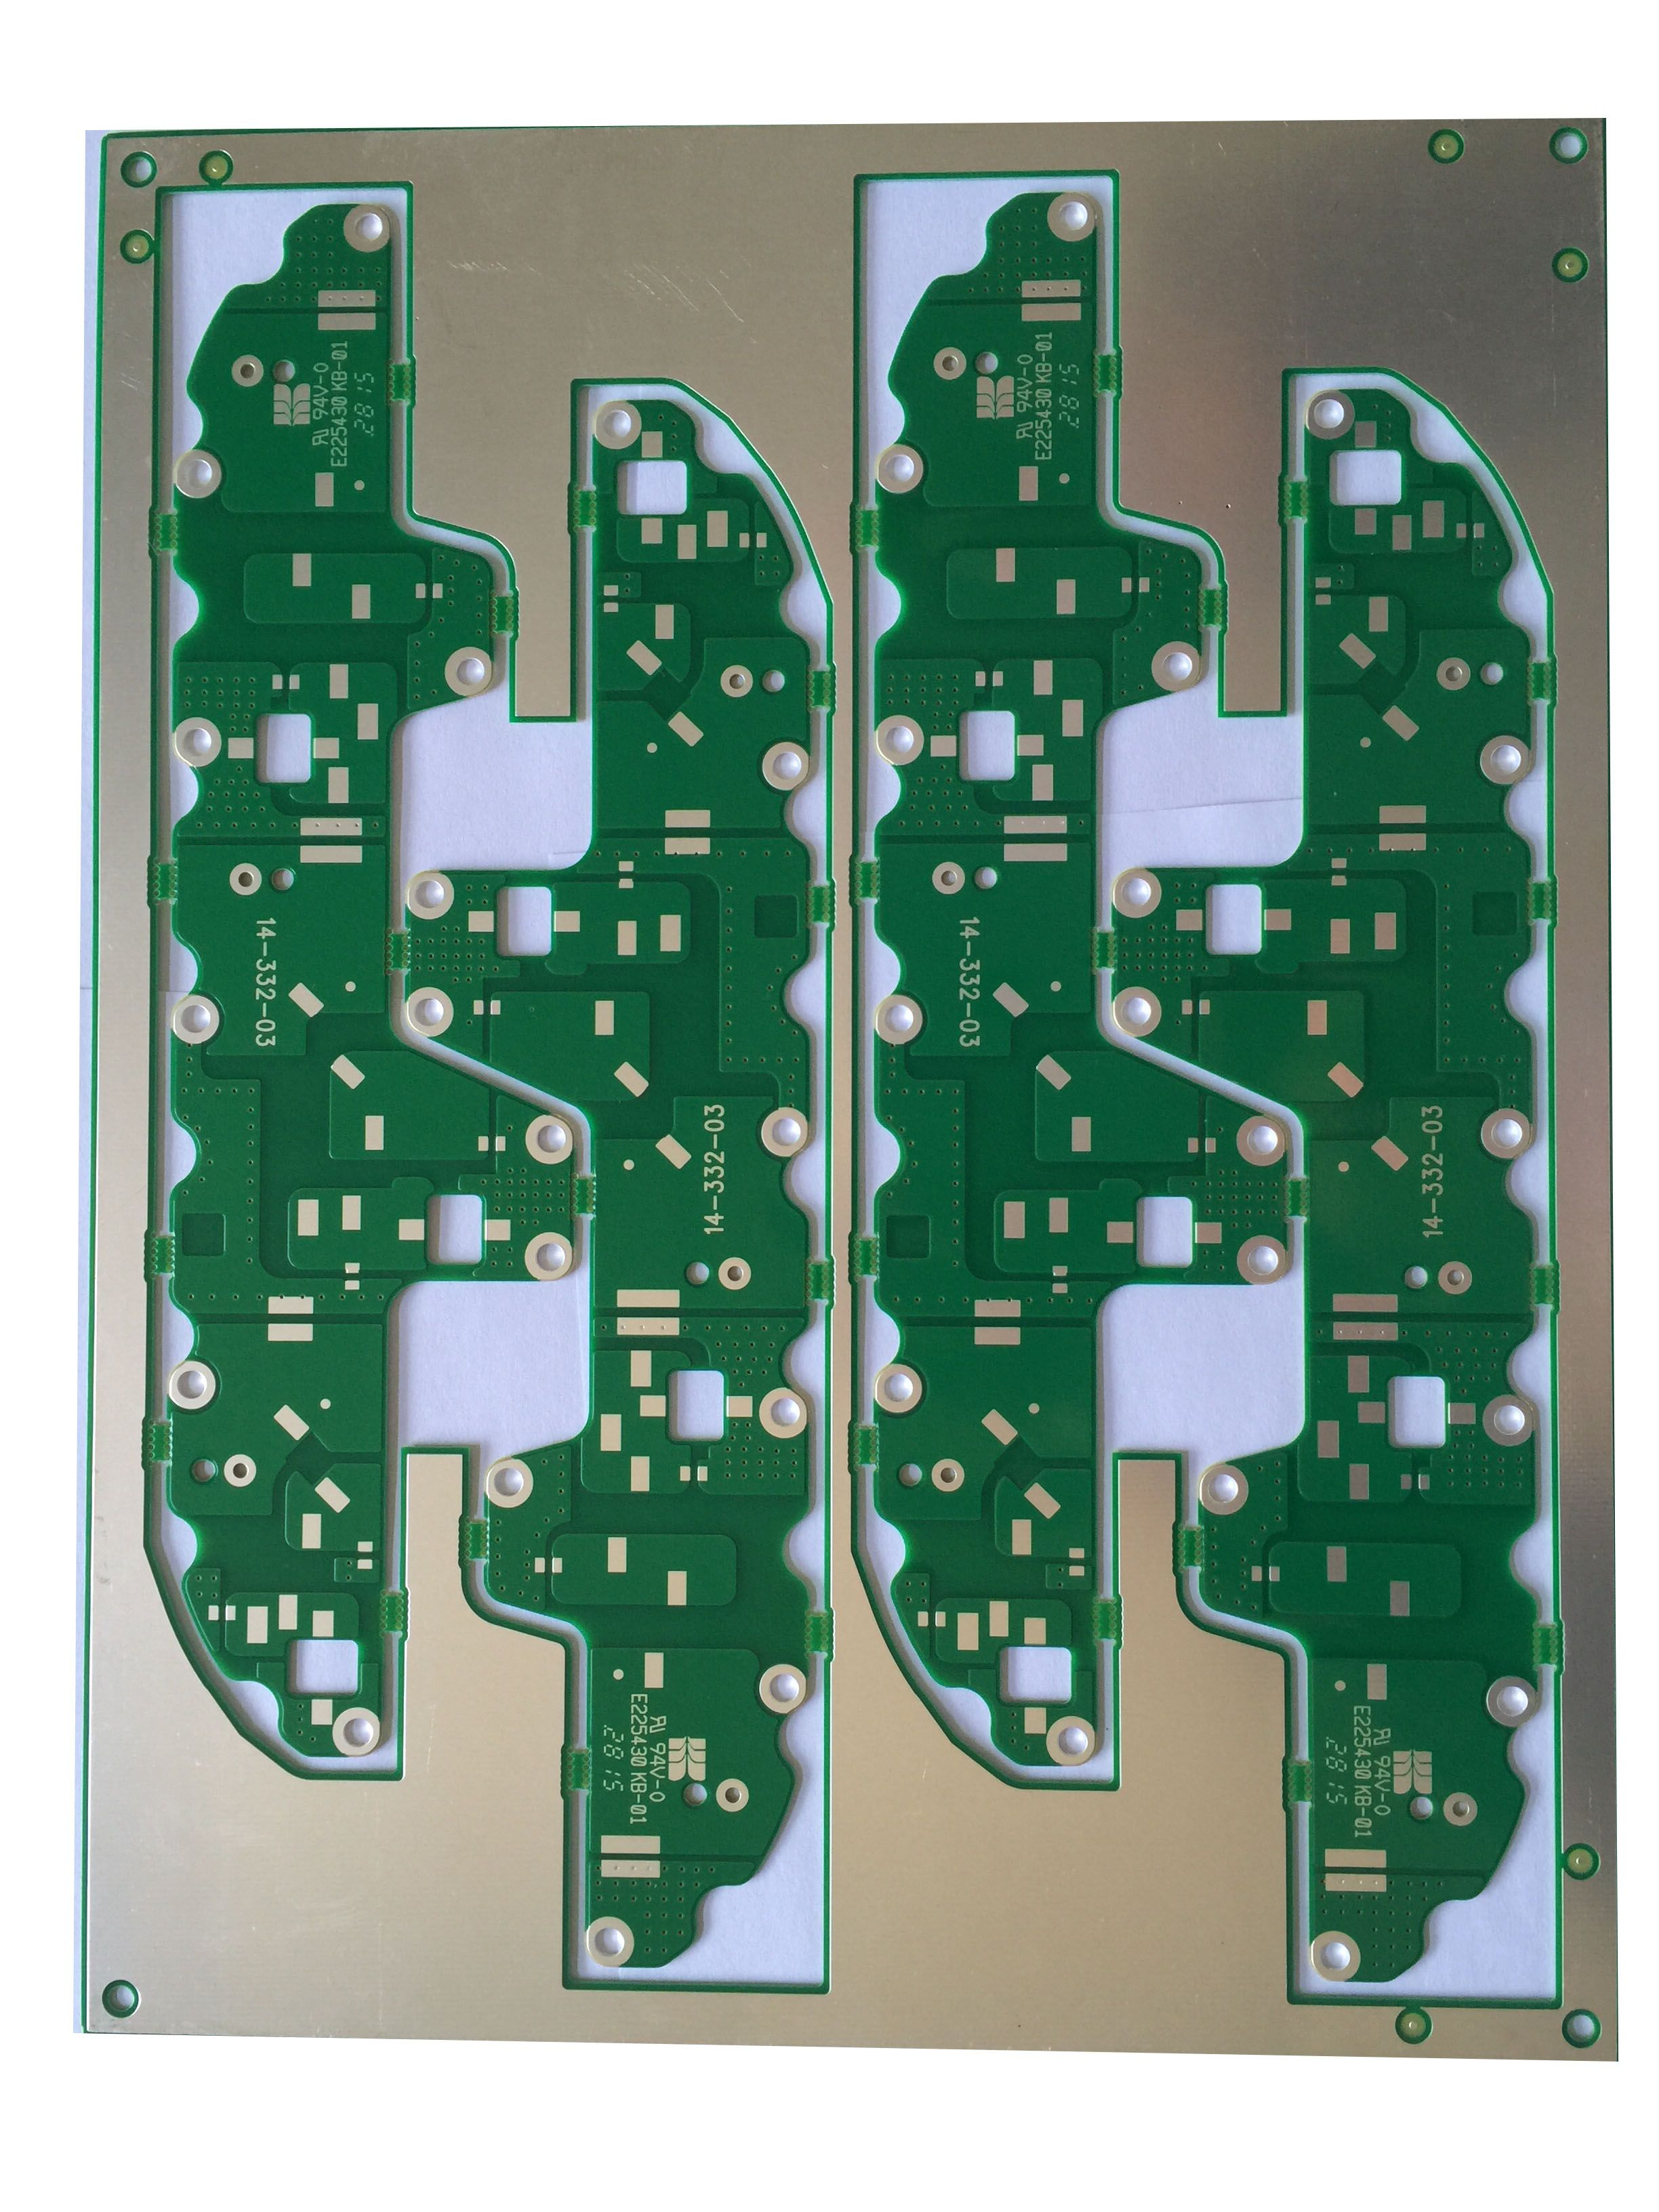 Rogers Double Sided Pcb With Immersion Tin High Frequency For 5g Doublesided Printed Circuit Boards Board Communication Pewter Amp